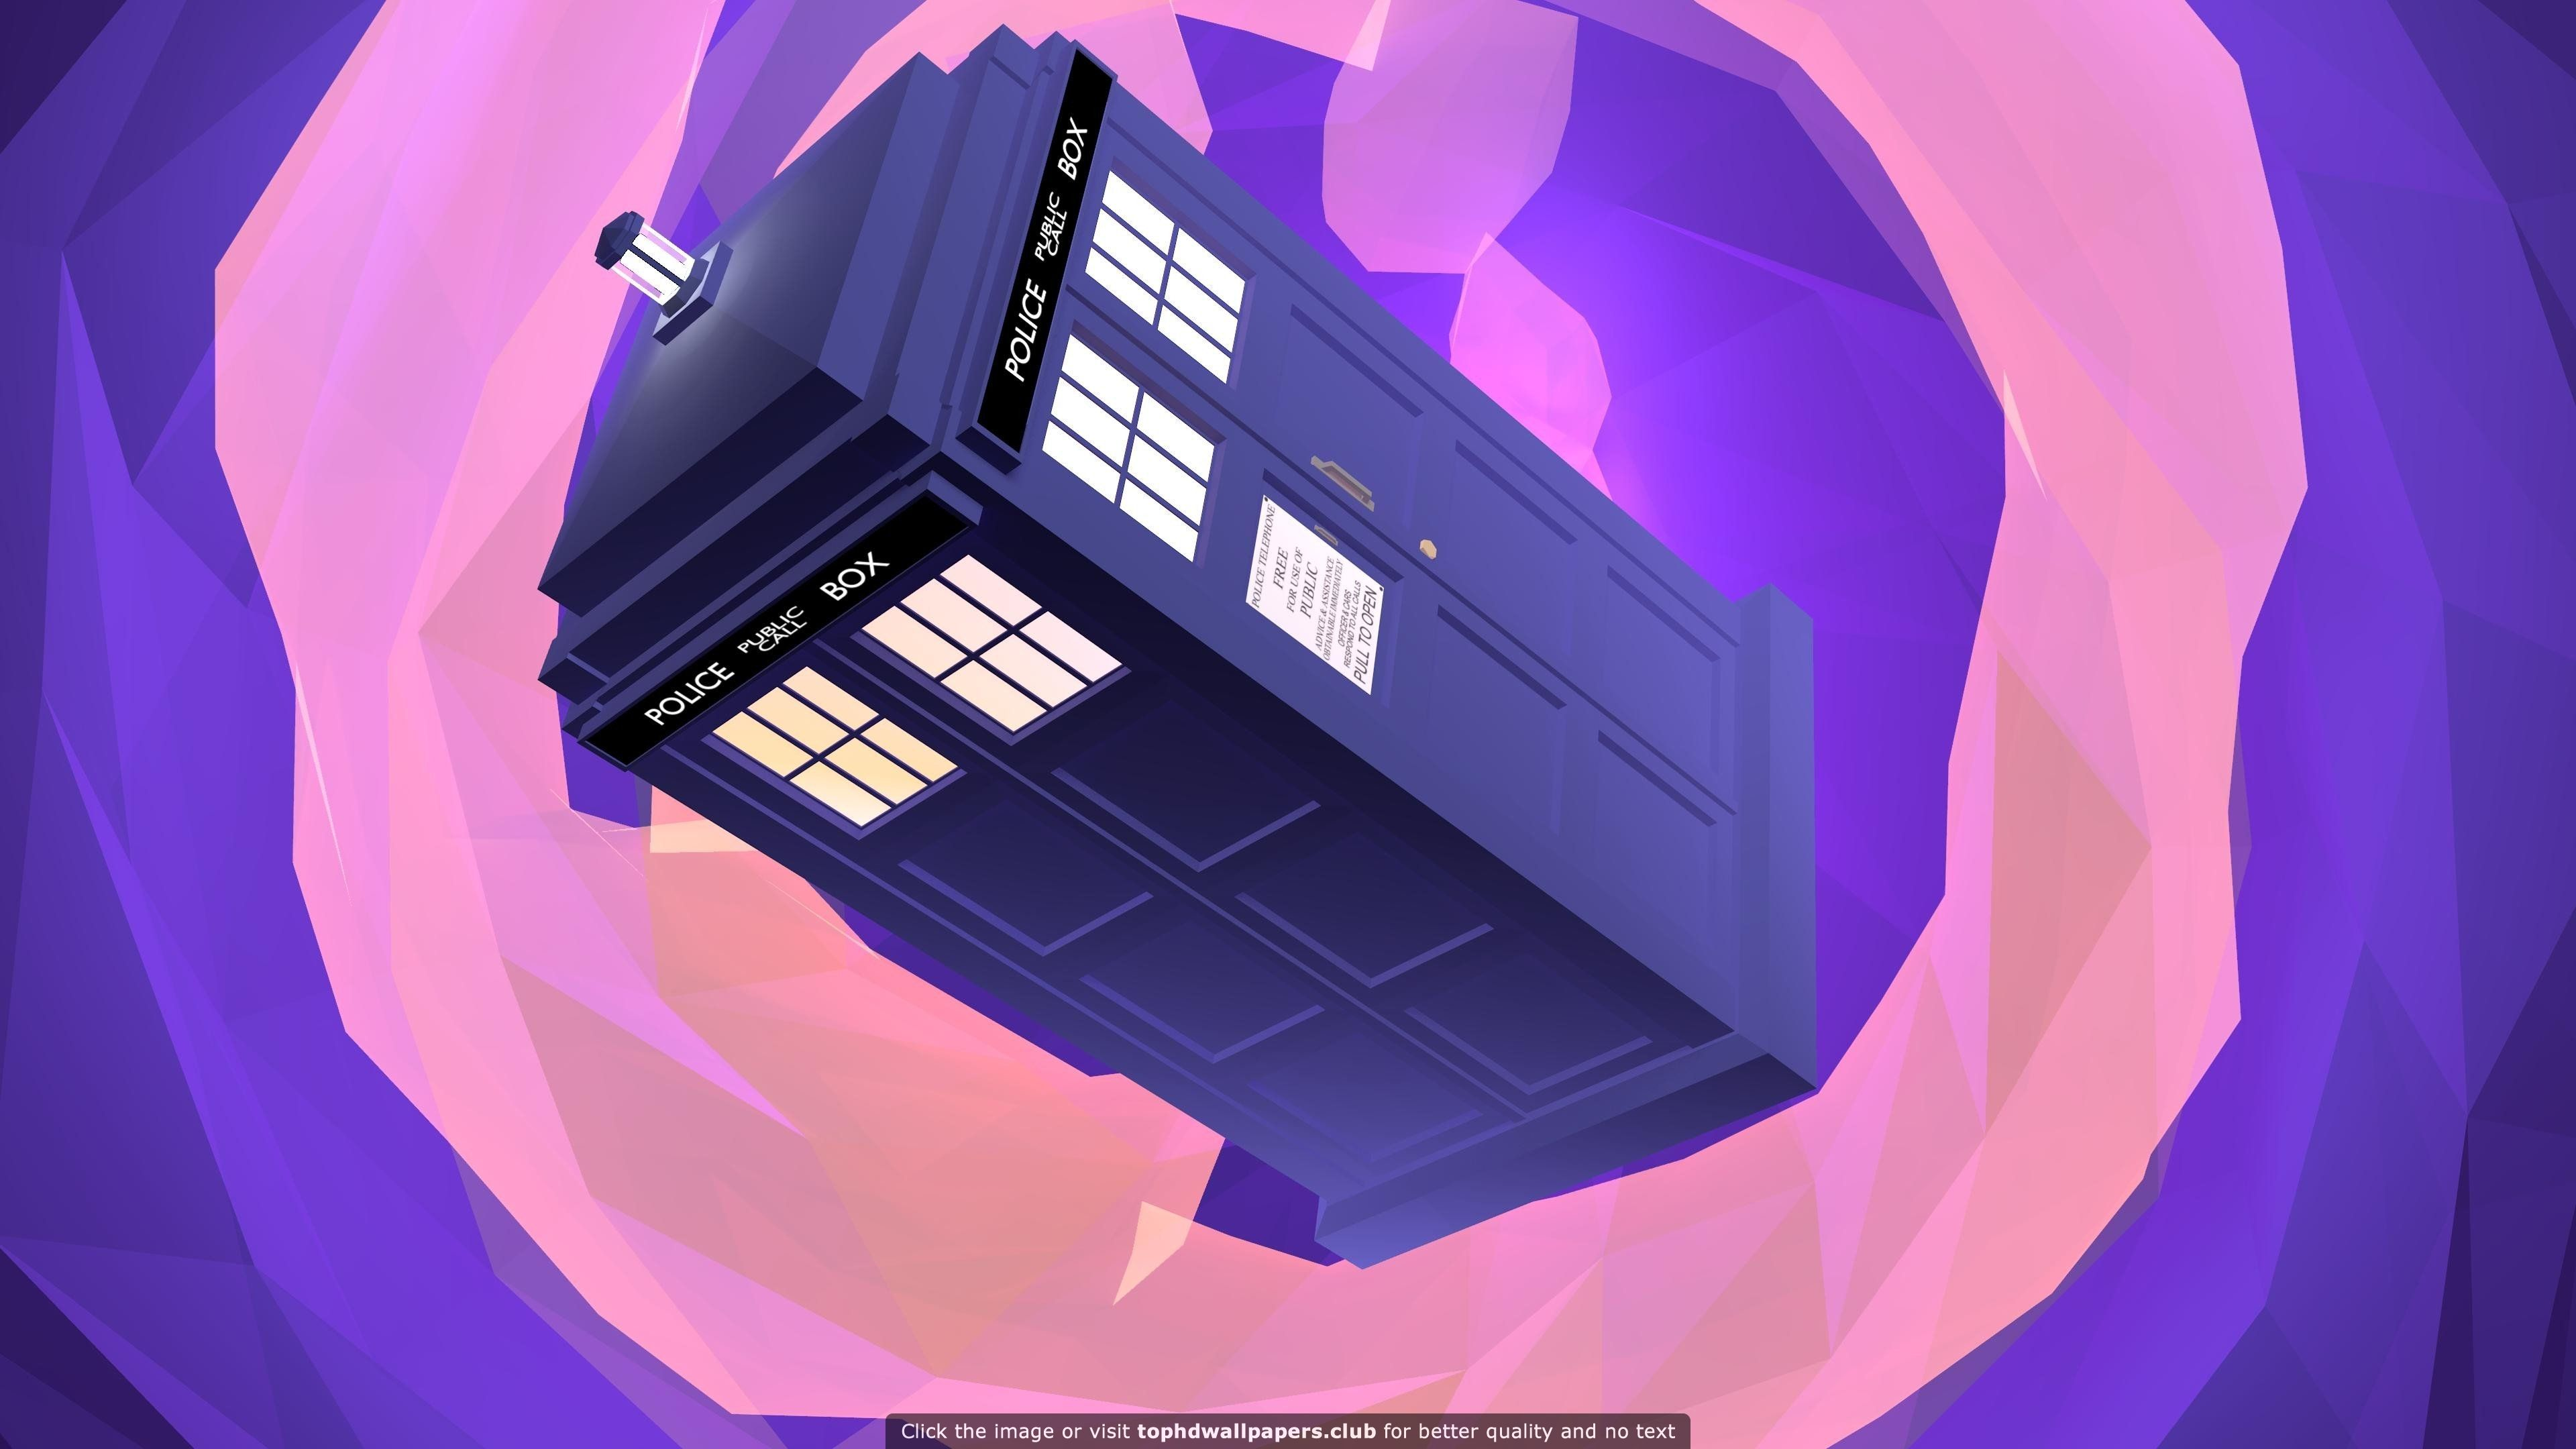 Tardis 4k Or Hd Wallpaper For Your Pc Mac Or Mobile Device